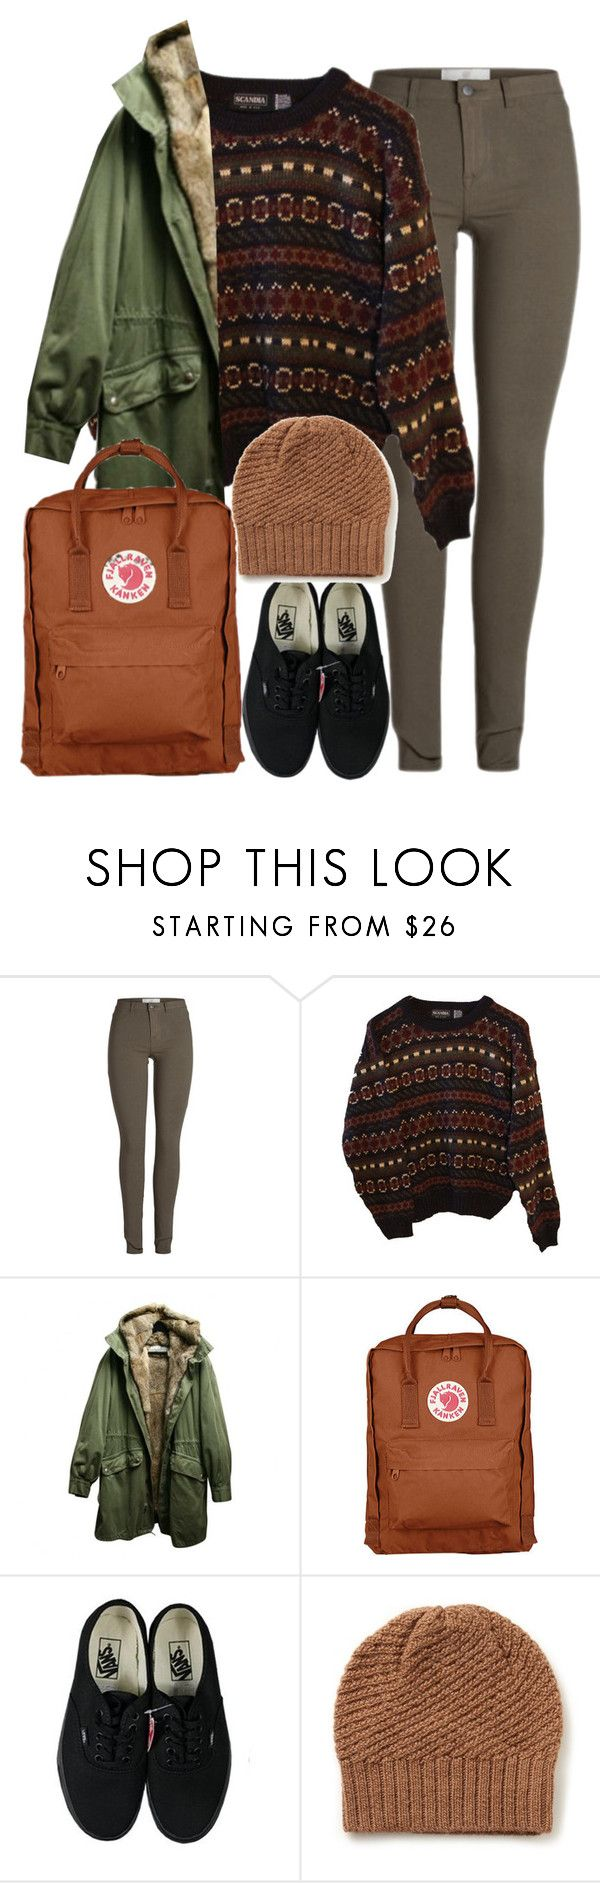 """Eva Mohn (Season 1) - Skam"" by travelerofthenight ❤ liked on Polyvore featuring INDIE HAIR, Yves Salomon, Fjällräven, Vans and KG Kurt Geiger"